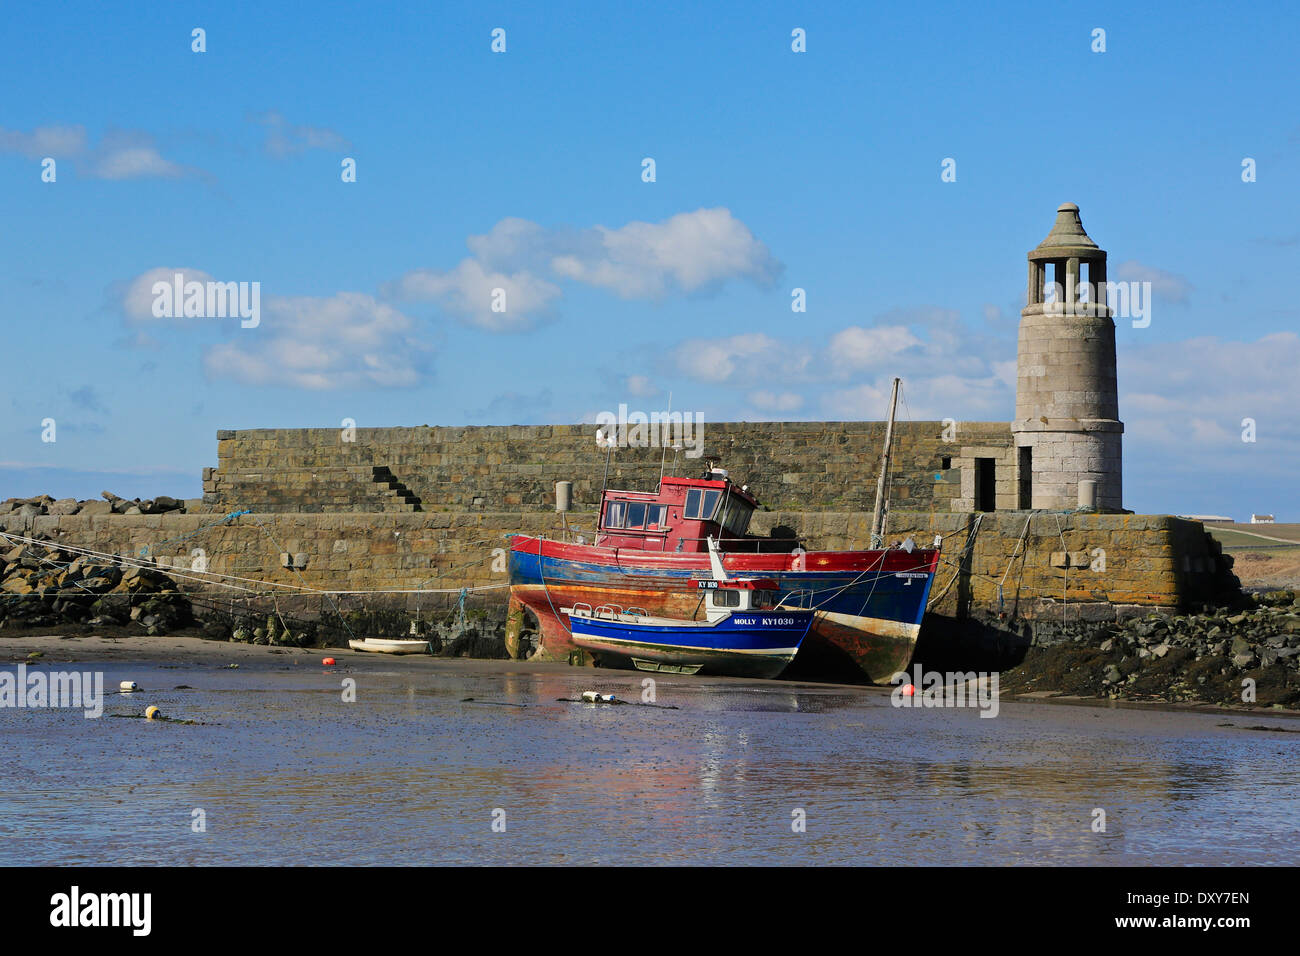 Port Logan Harbour, Port Logan, 'The Rhines' Dumfries and Galloway, Scotland - Stock Image